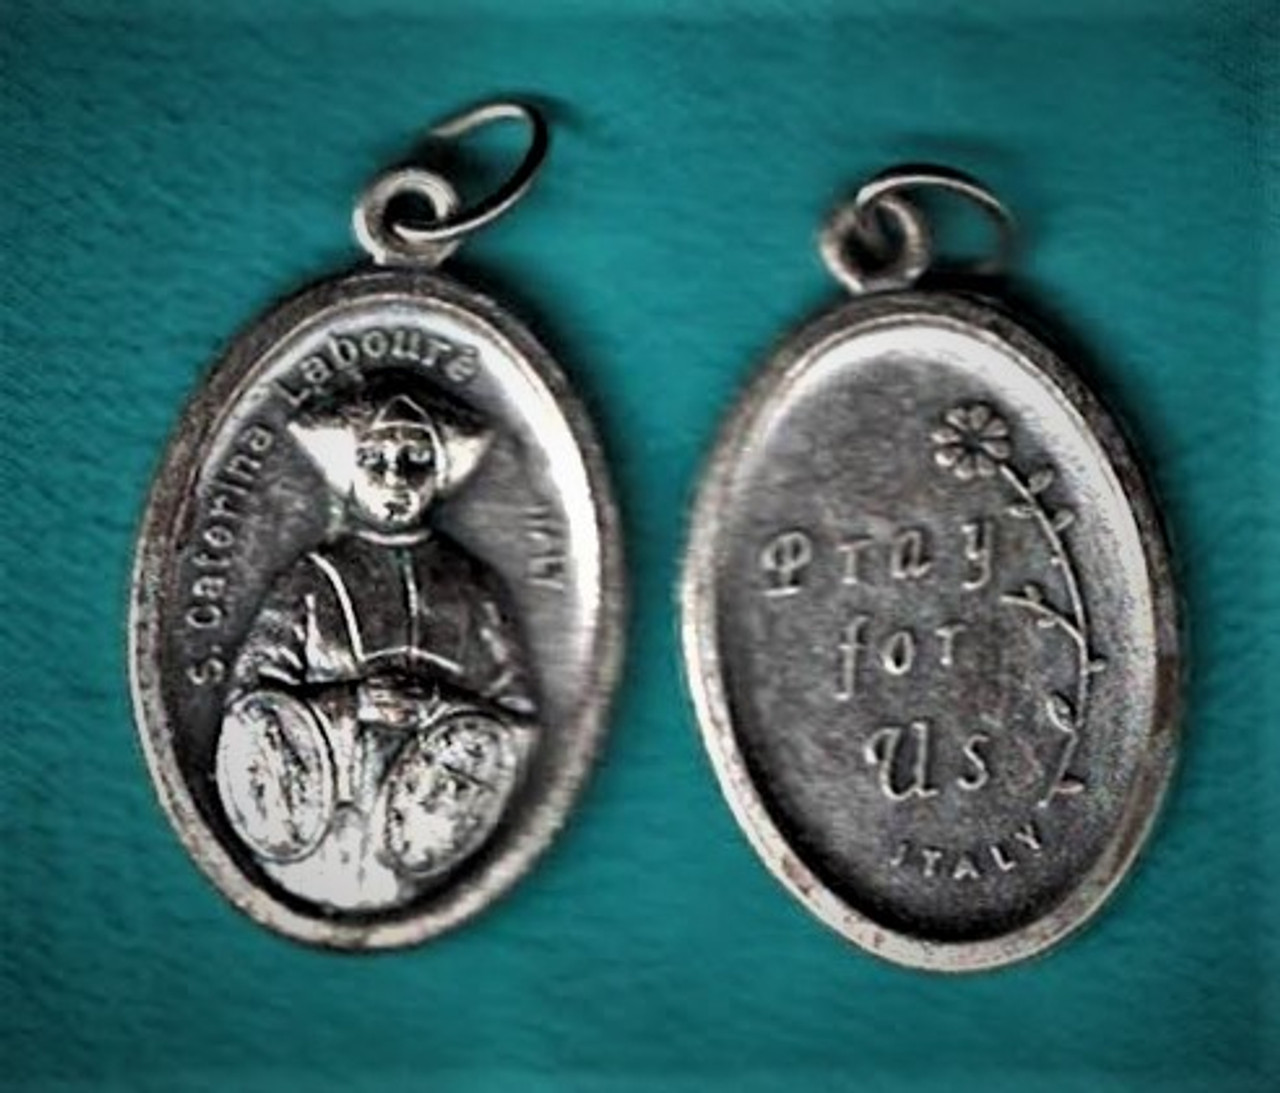 S. Caterina Labour Medal